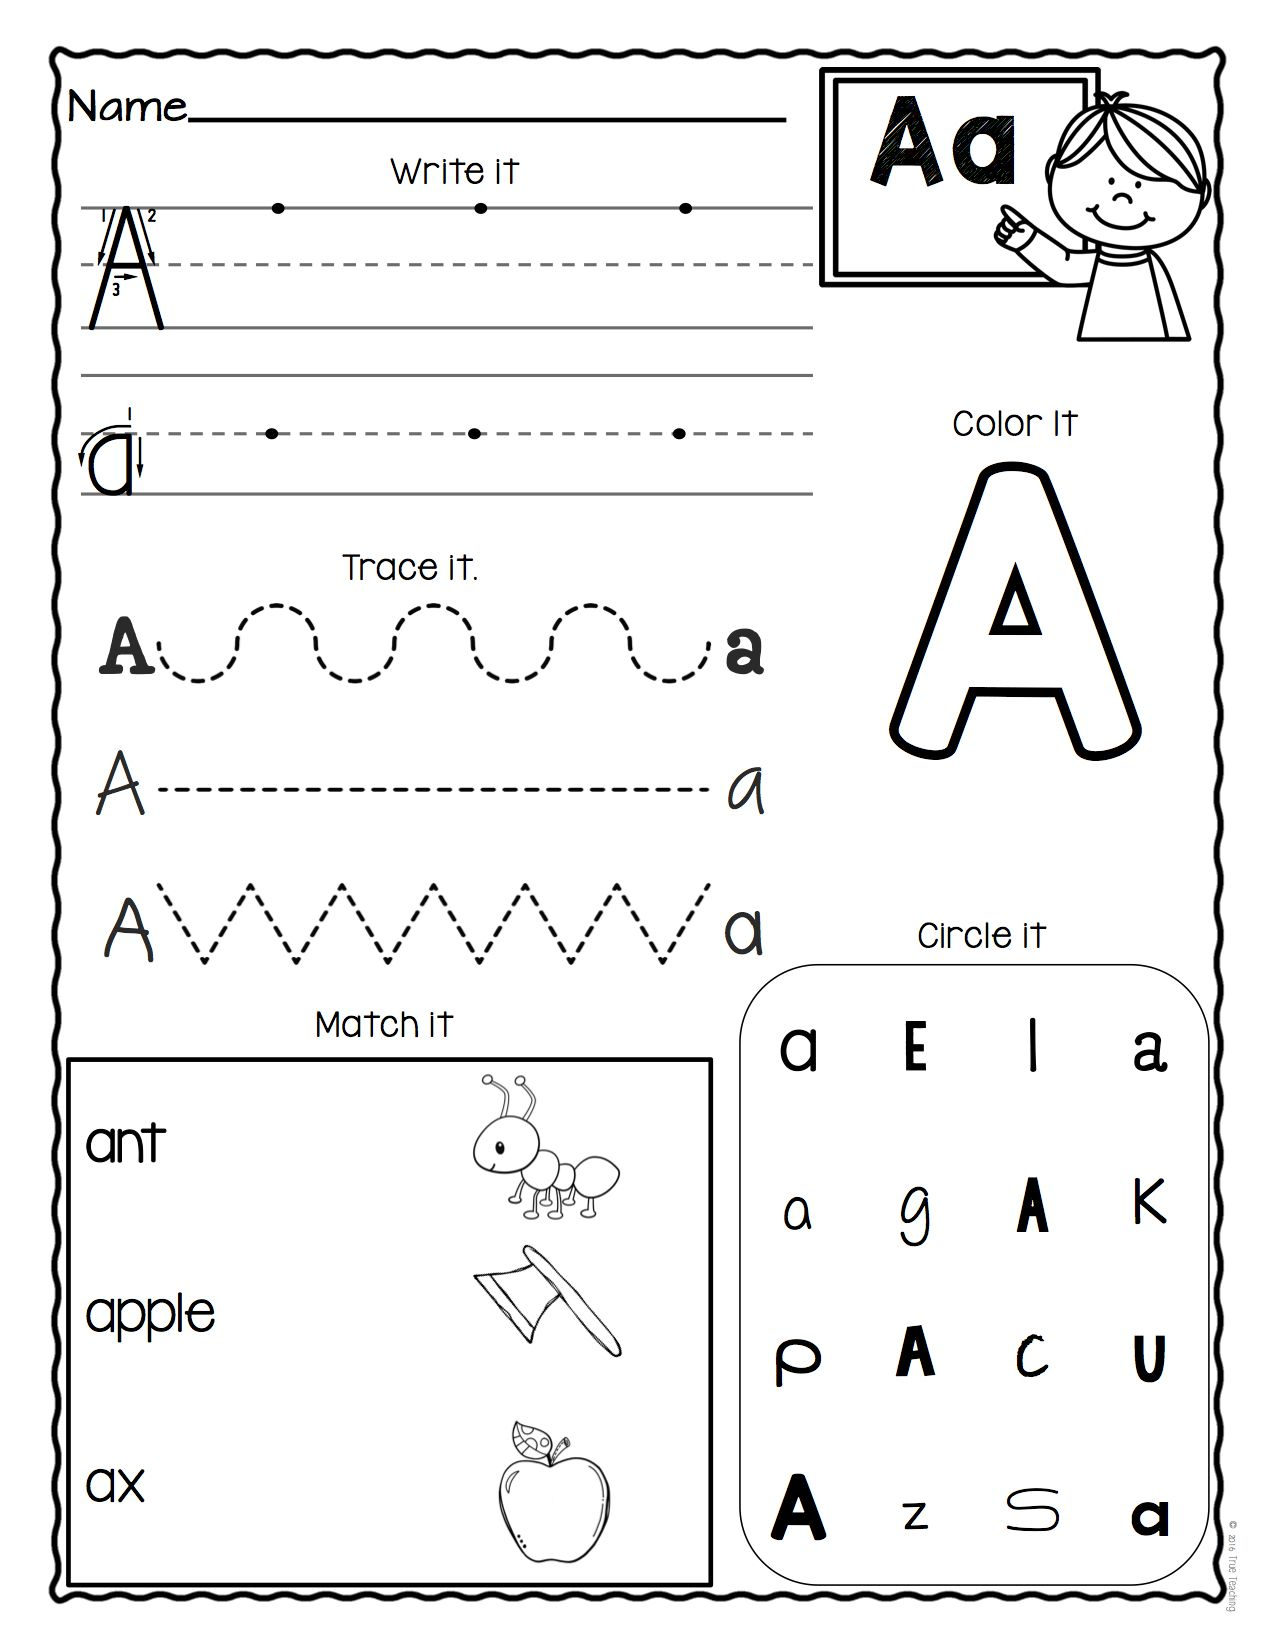 A-Z Letter Worksheets (Set 3) | Preschool Worksheets with regard to Letter Worksheets A-Z